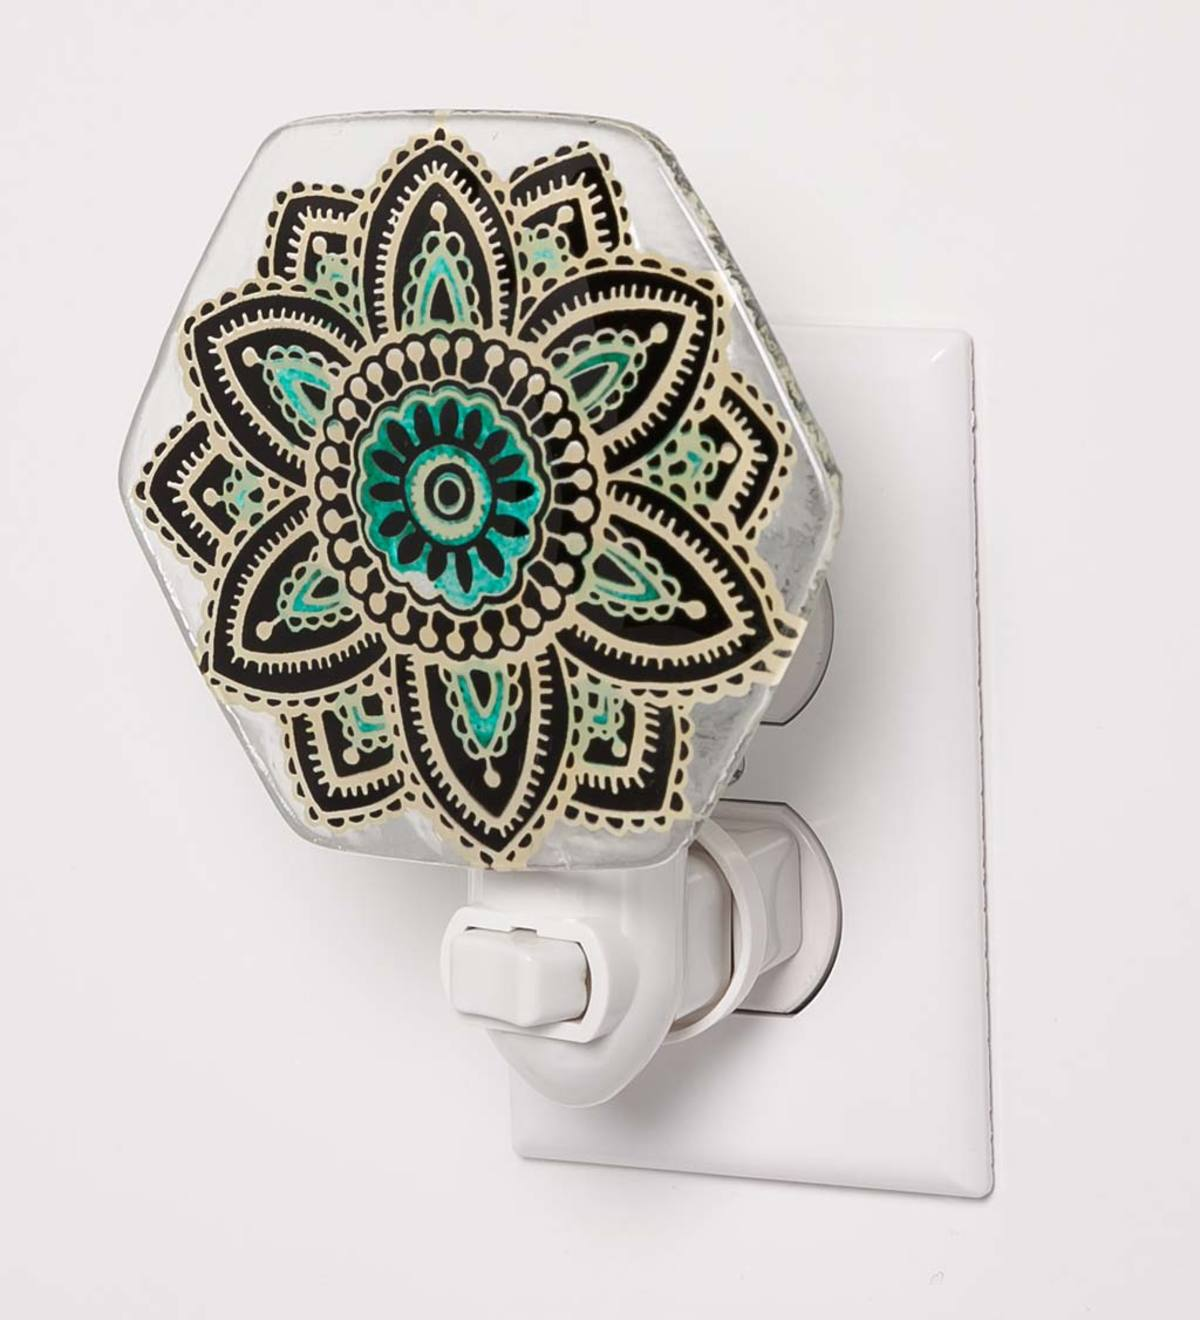 Hand-Painted Glass Nightlight with Mandala Design